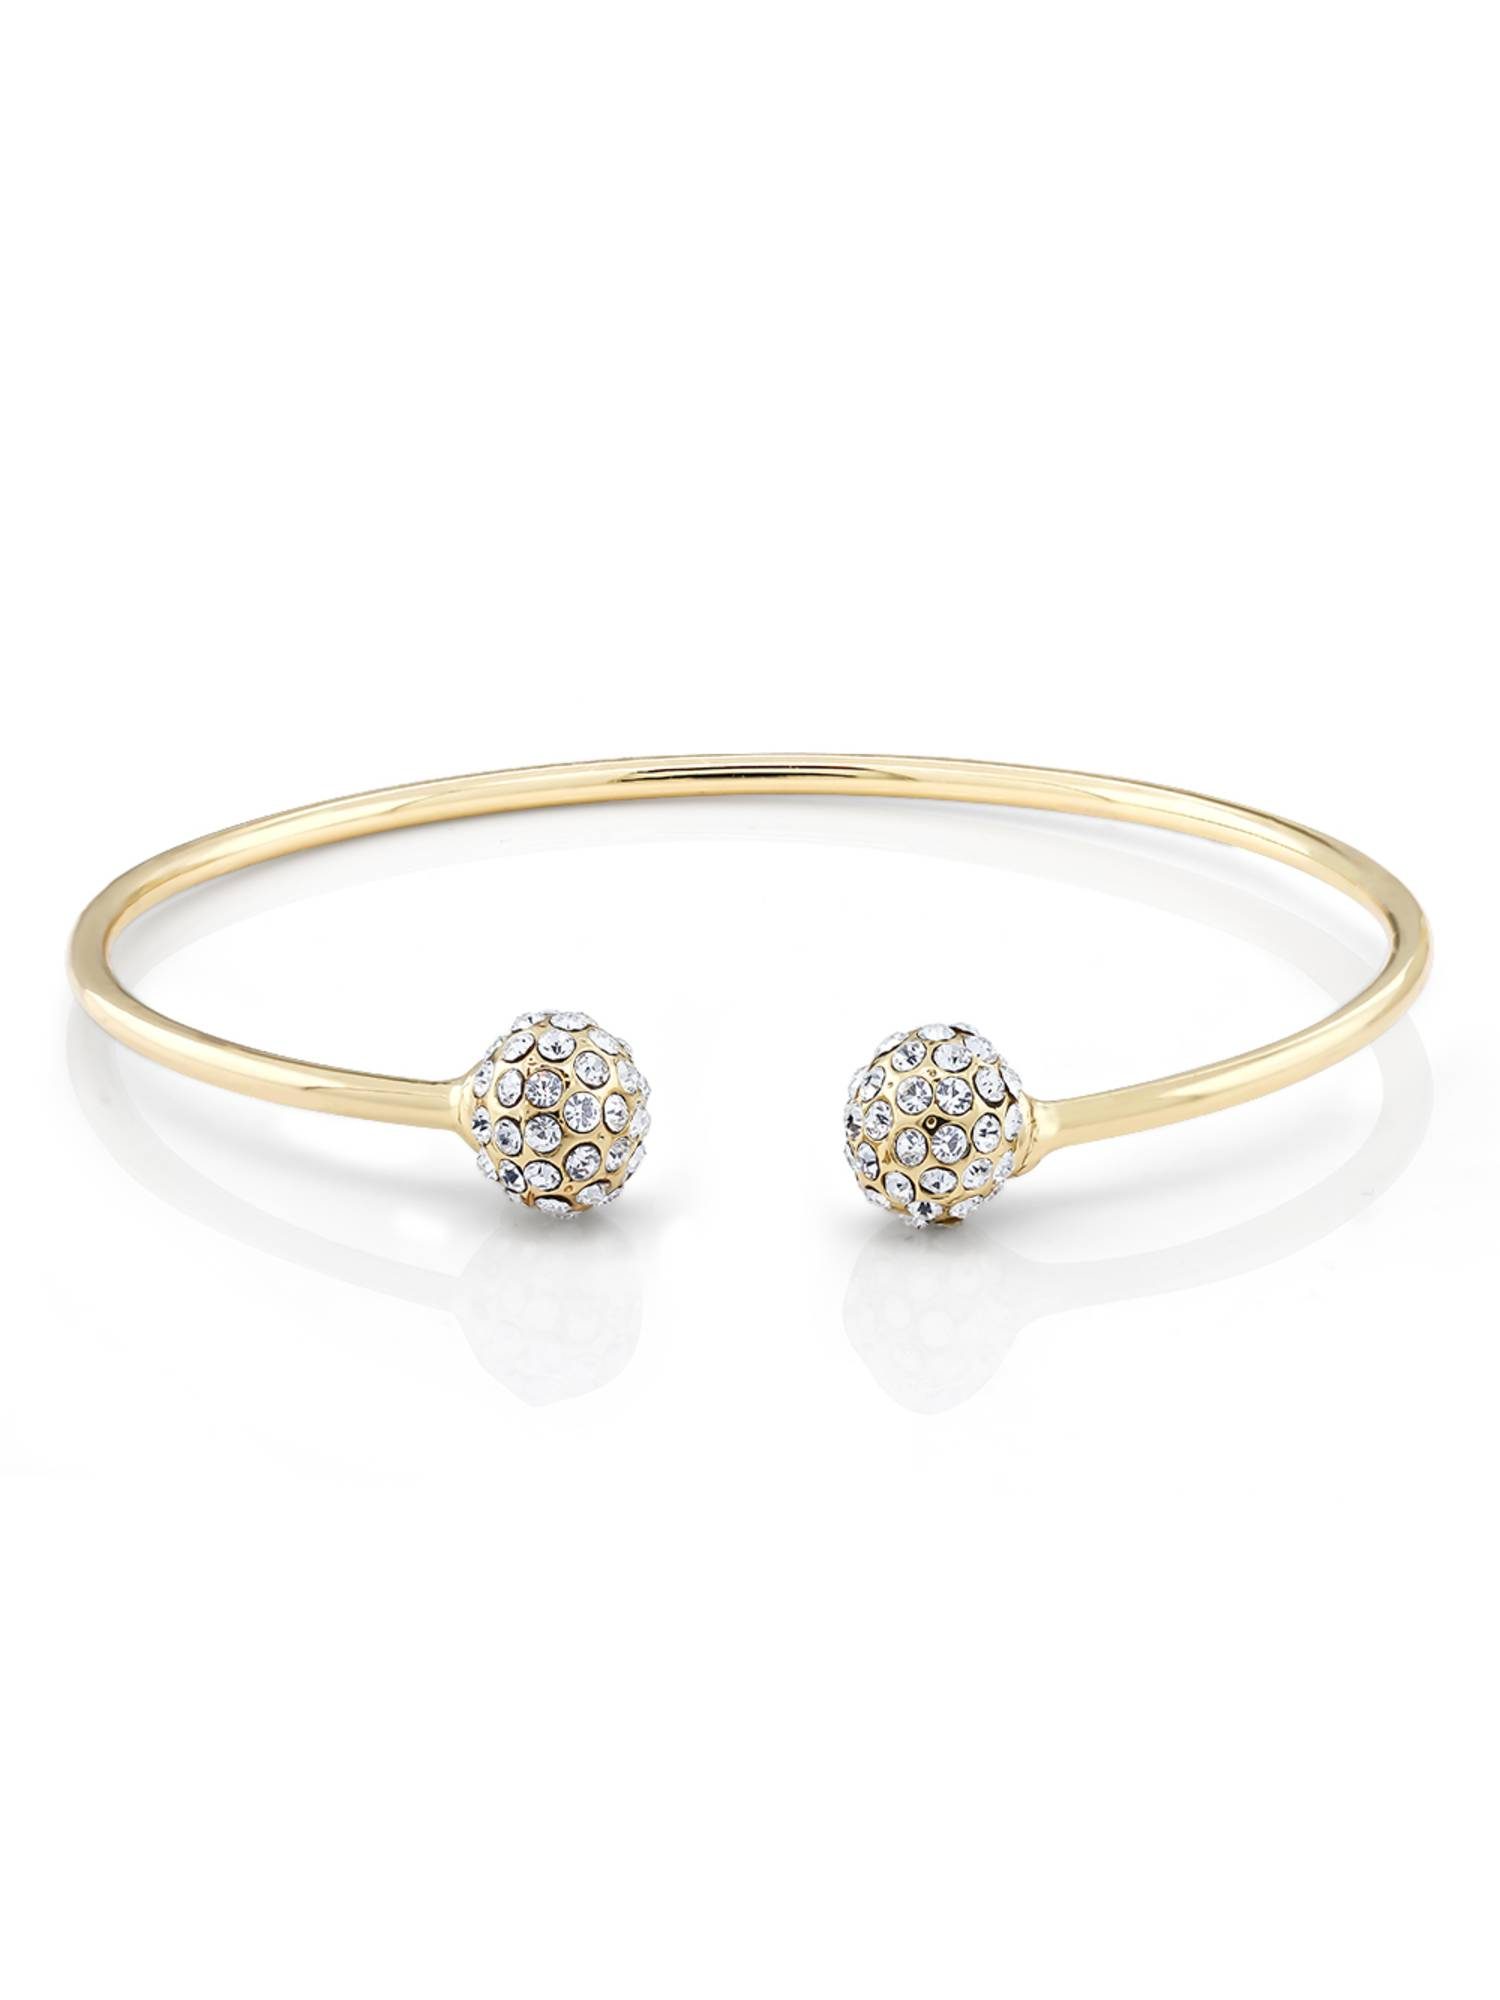 "Stunning 7.5"" Yellow Gold Plated Brass Open Bangle Bracelet with Ball Shape Crystals"